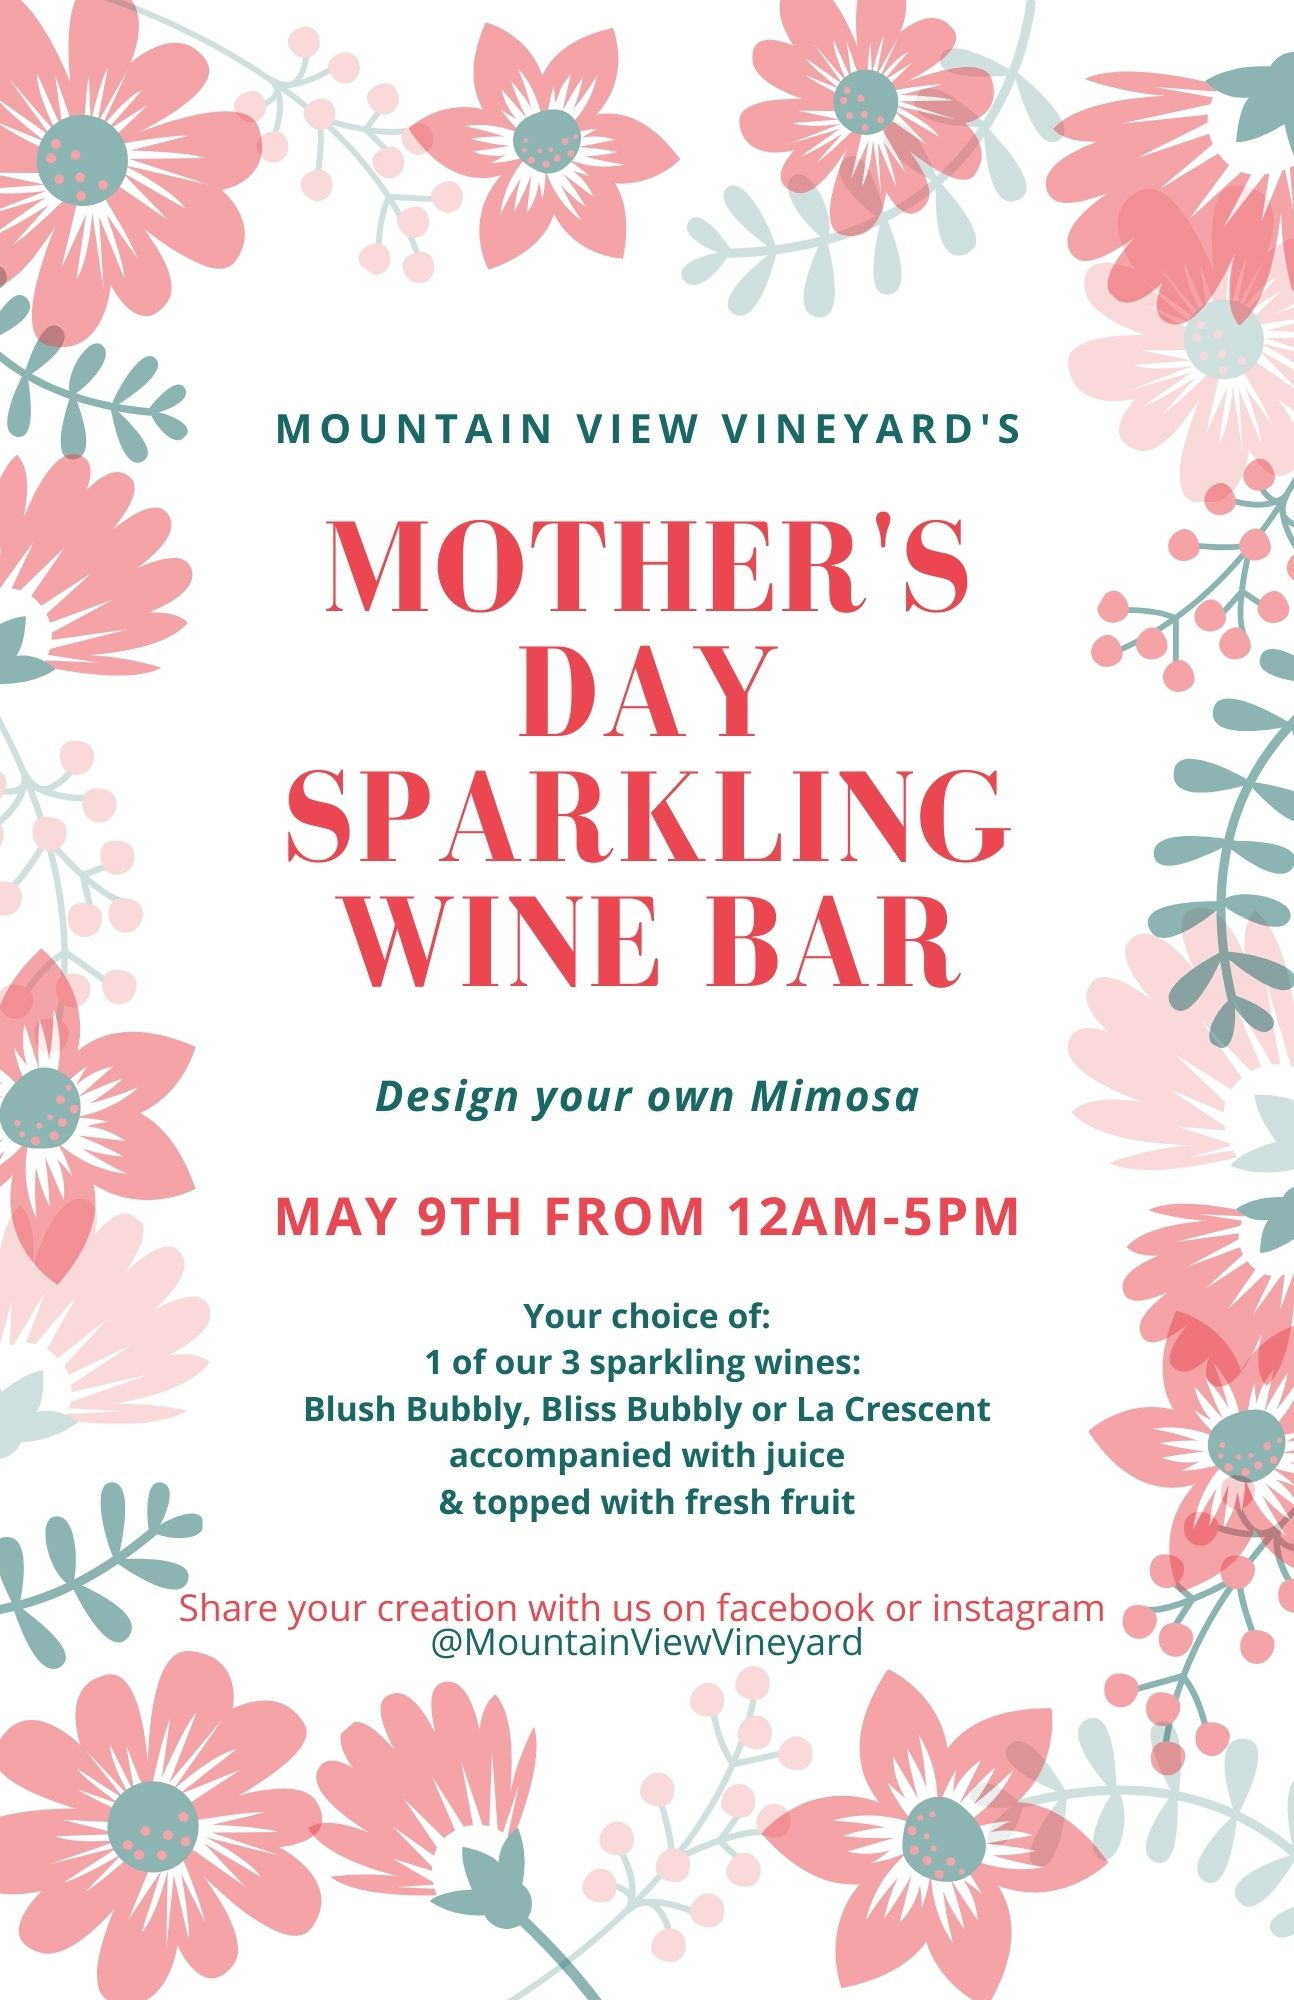 Mother's Day sparkling wine bar